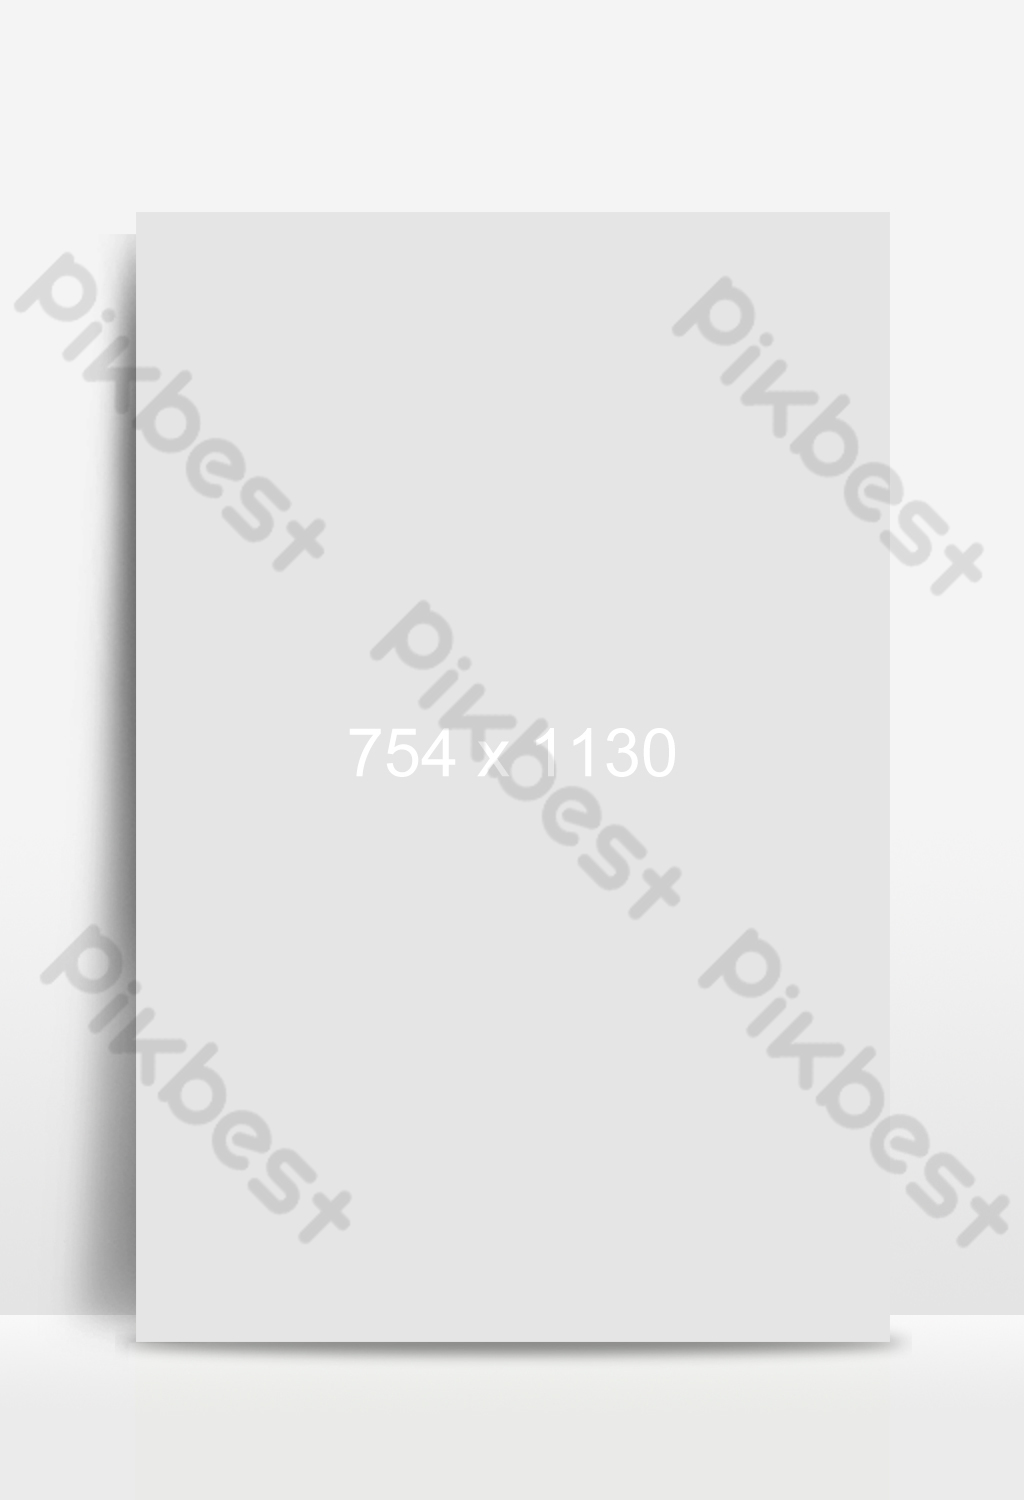 Weight Loss Running Sports Background Backgrounds Psd Free Download Pikbest